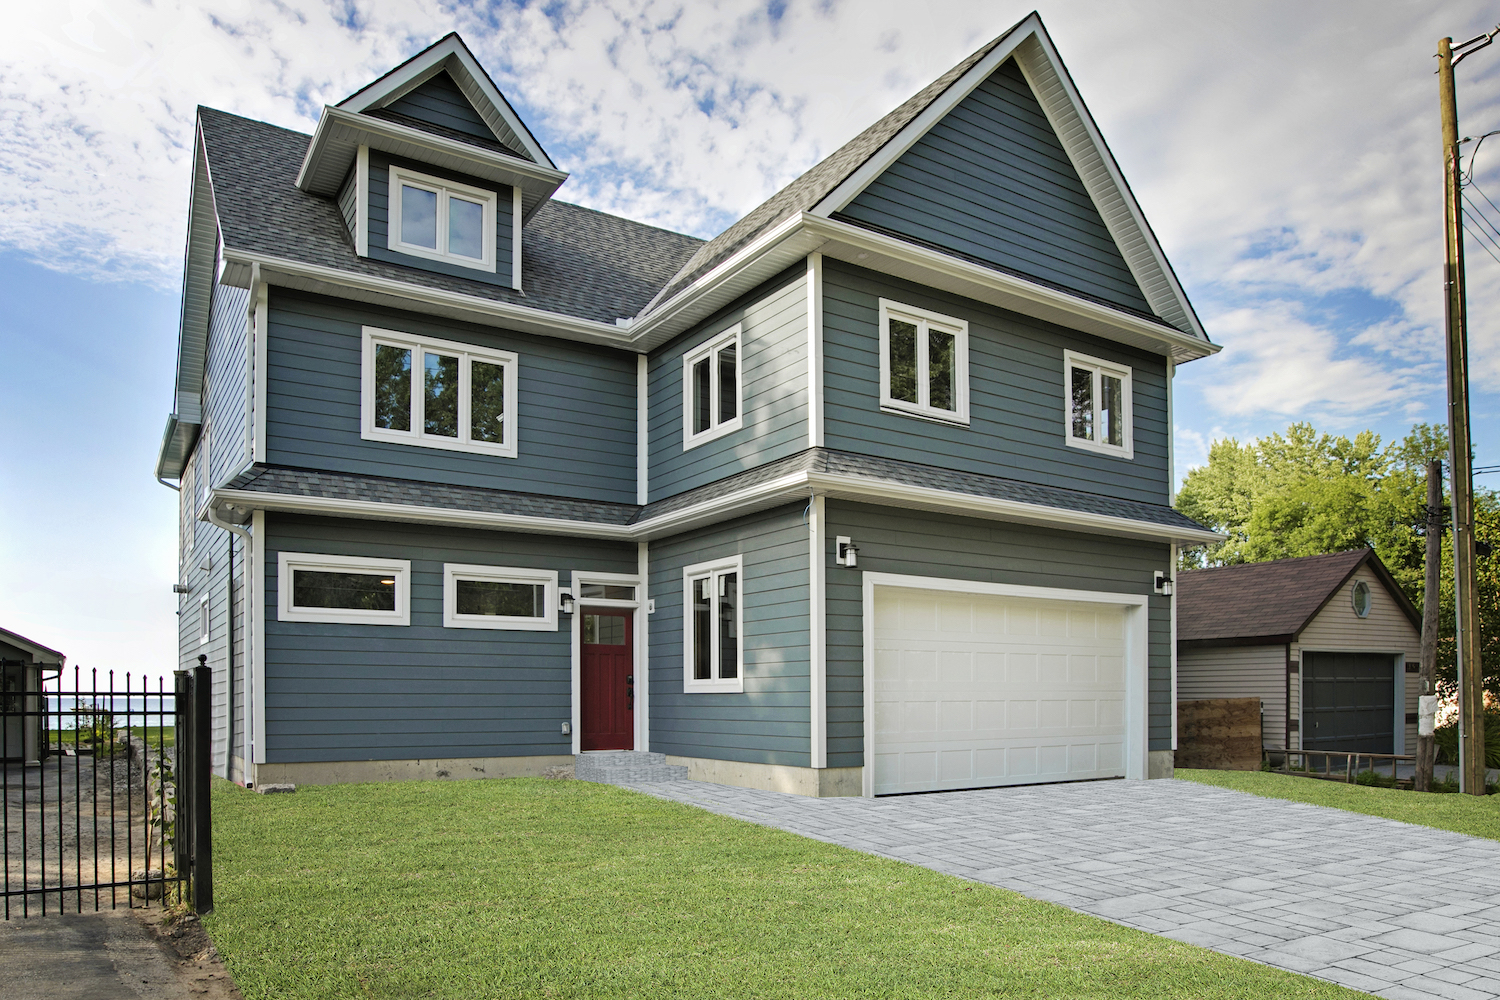 Pefferlaw_lakefront_two_story_custom_home-construct_conserve-new.jpg